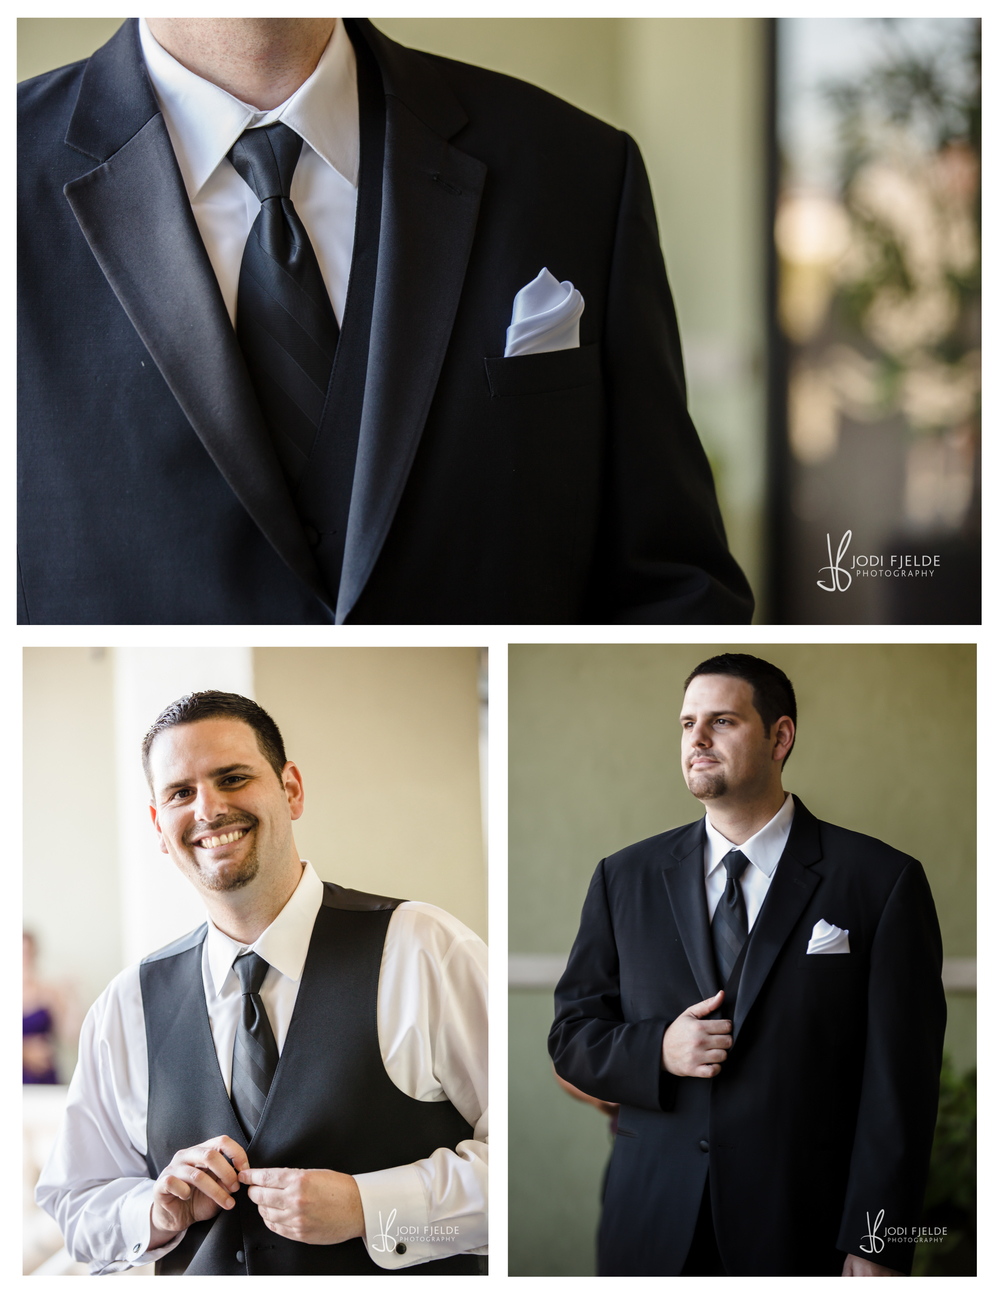 Ballroom Wedding_Ft Lauderdale_Florida_wedding_Maria_&_Juan_photography_jodi_Fjelde_photography-7.jpg